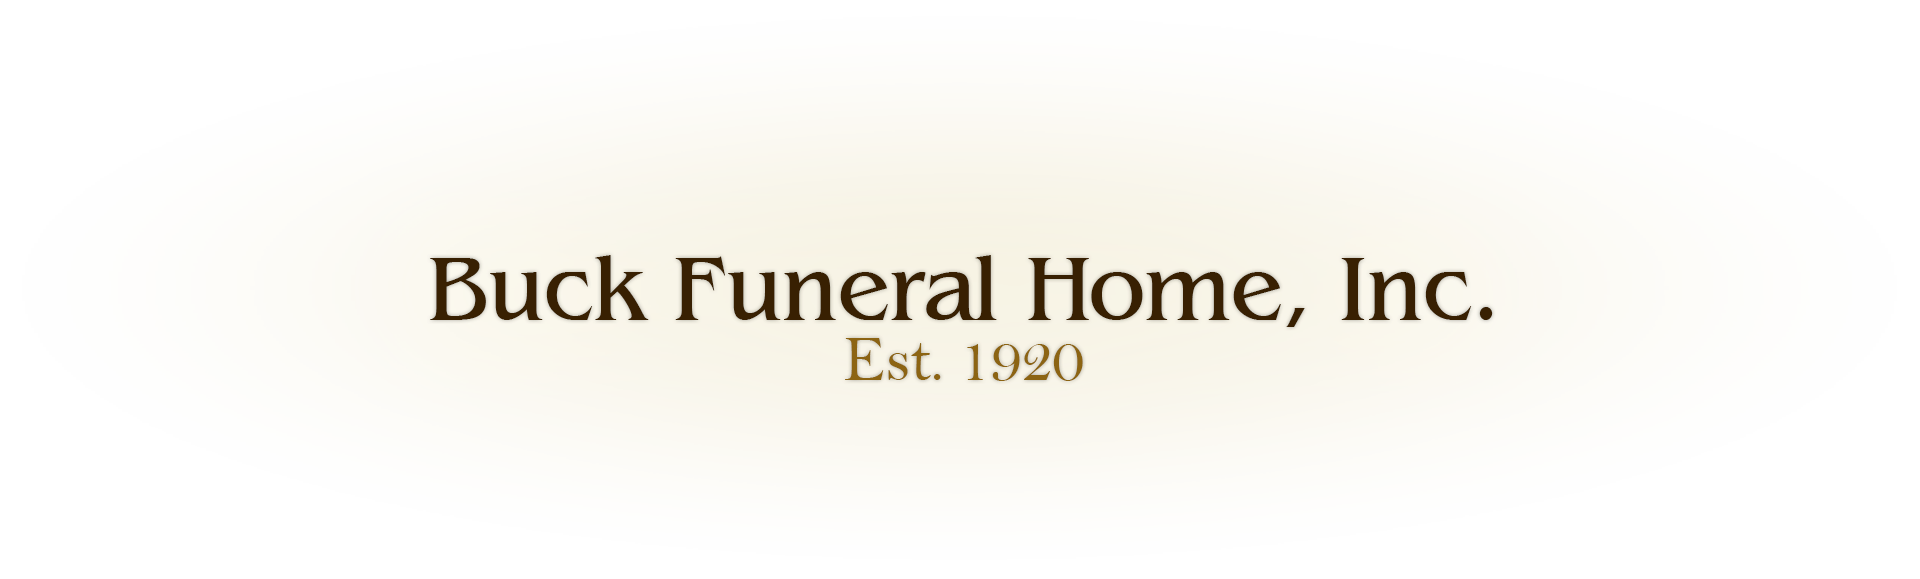 Send flowers buck funeral home serving norwood colton norfol floral services izmirmasajfo Images